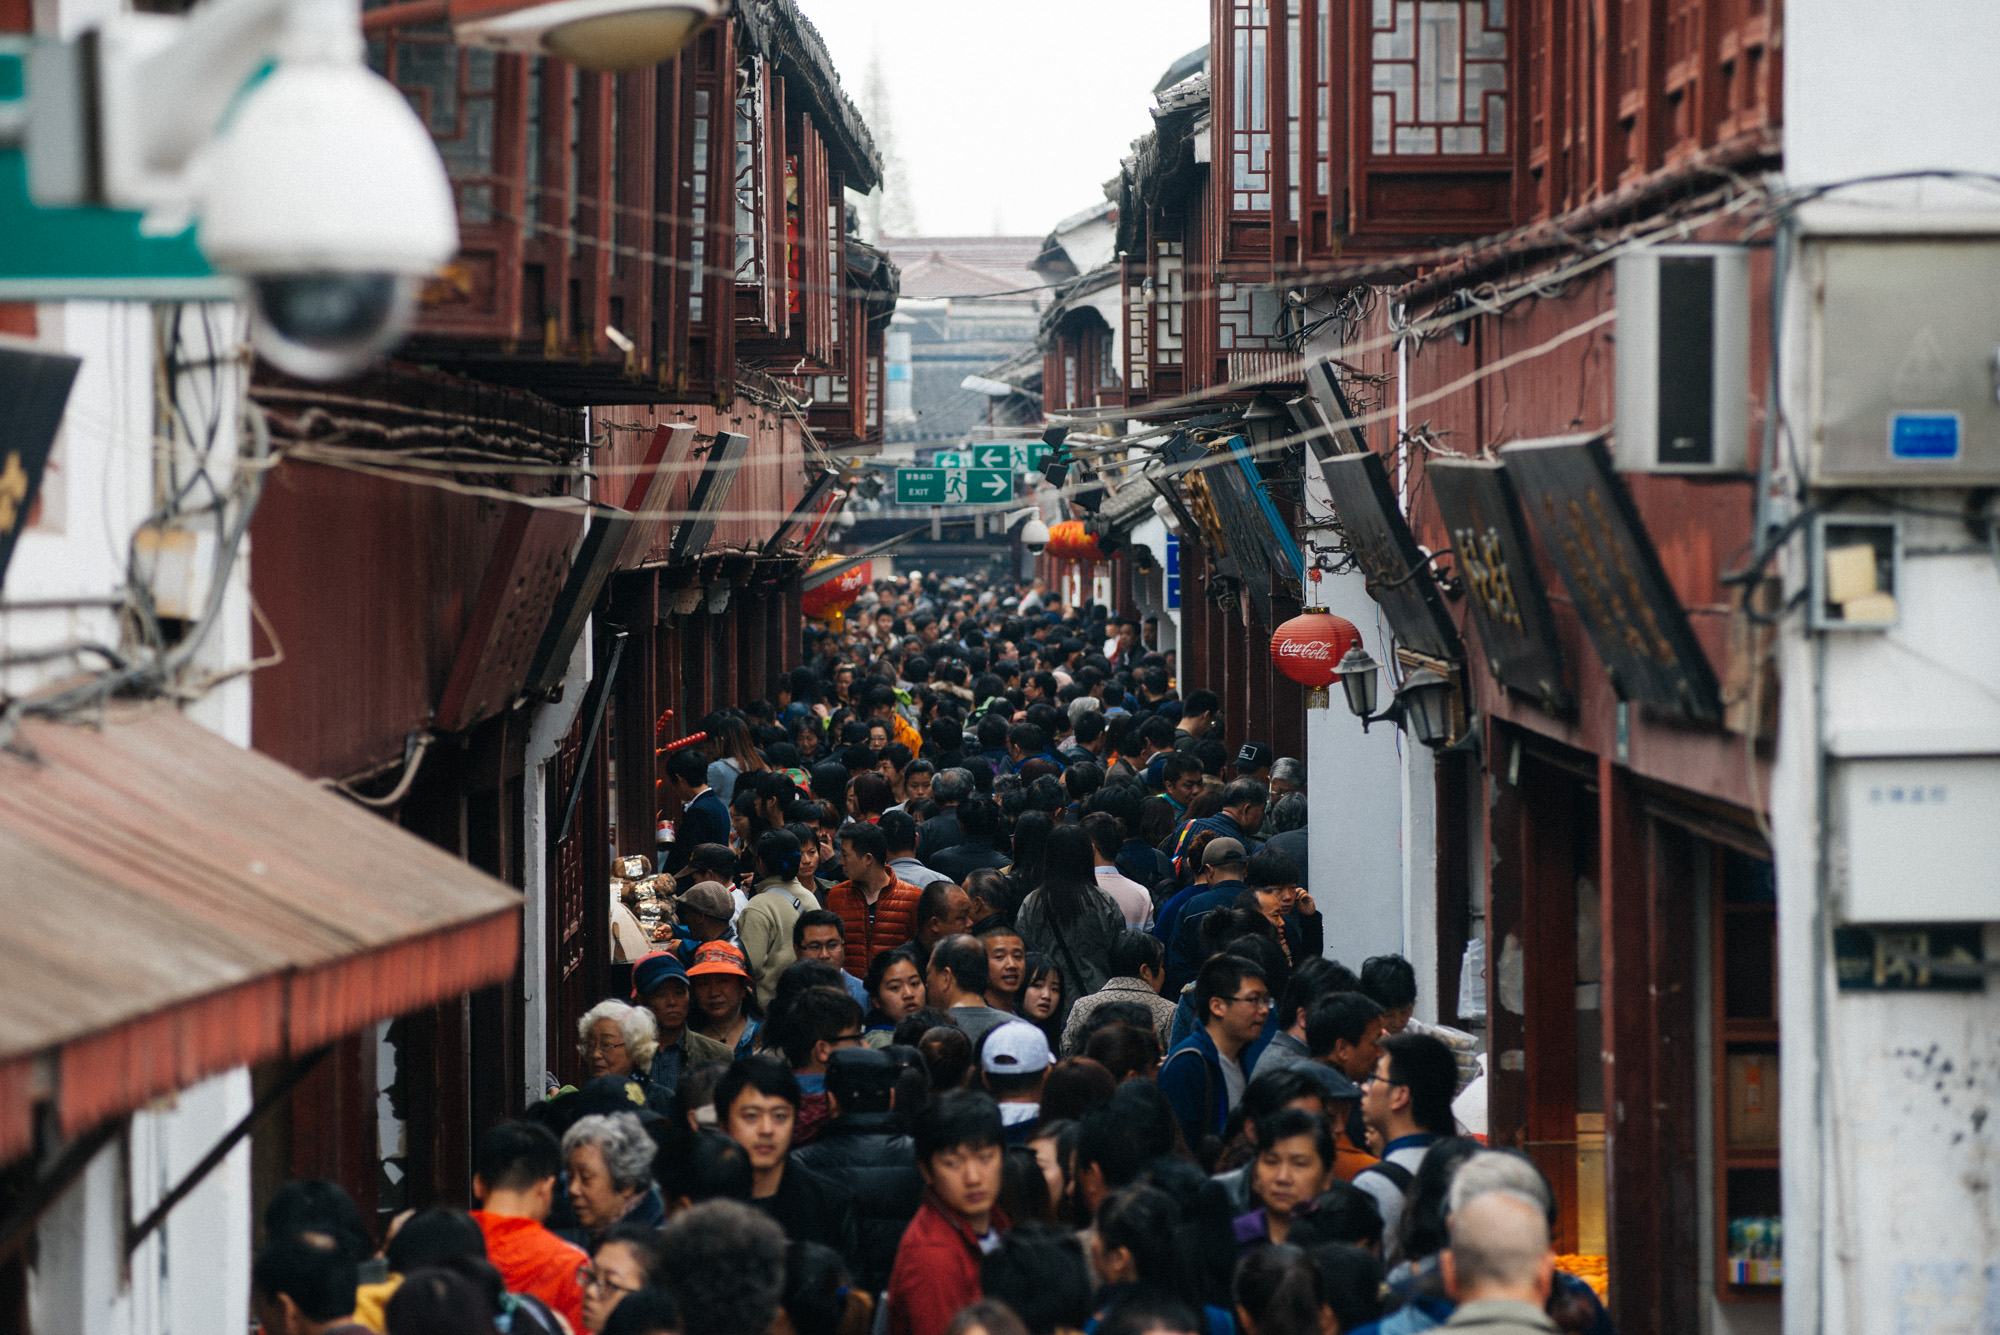 Differently from the Beijing hutongs, the small alleys in the ancient Shanghai area are two stories tall. Today, this street in Qibao is full of shops selling souvenirs and food to tourists.